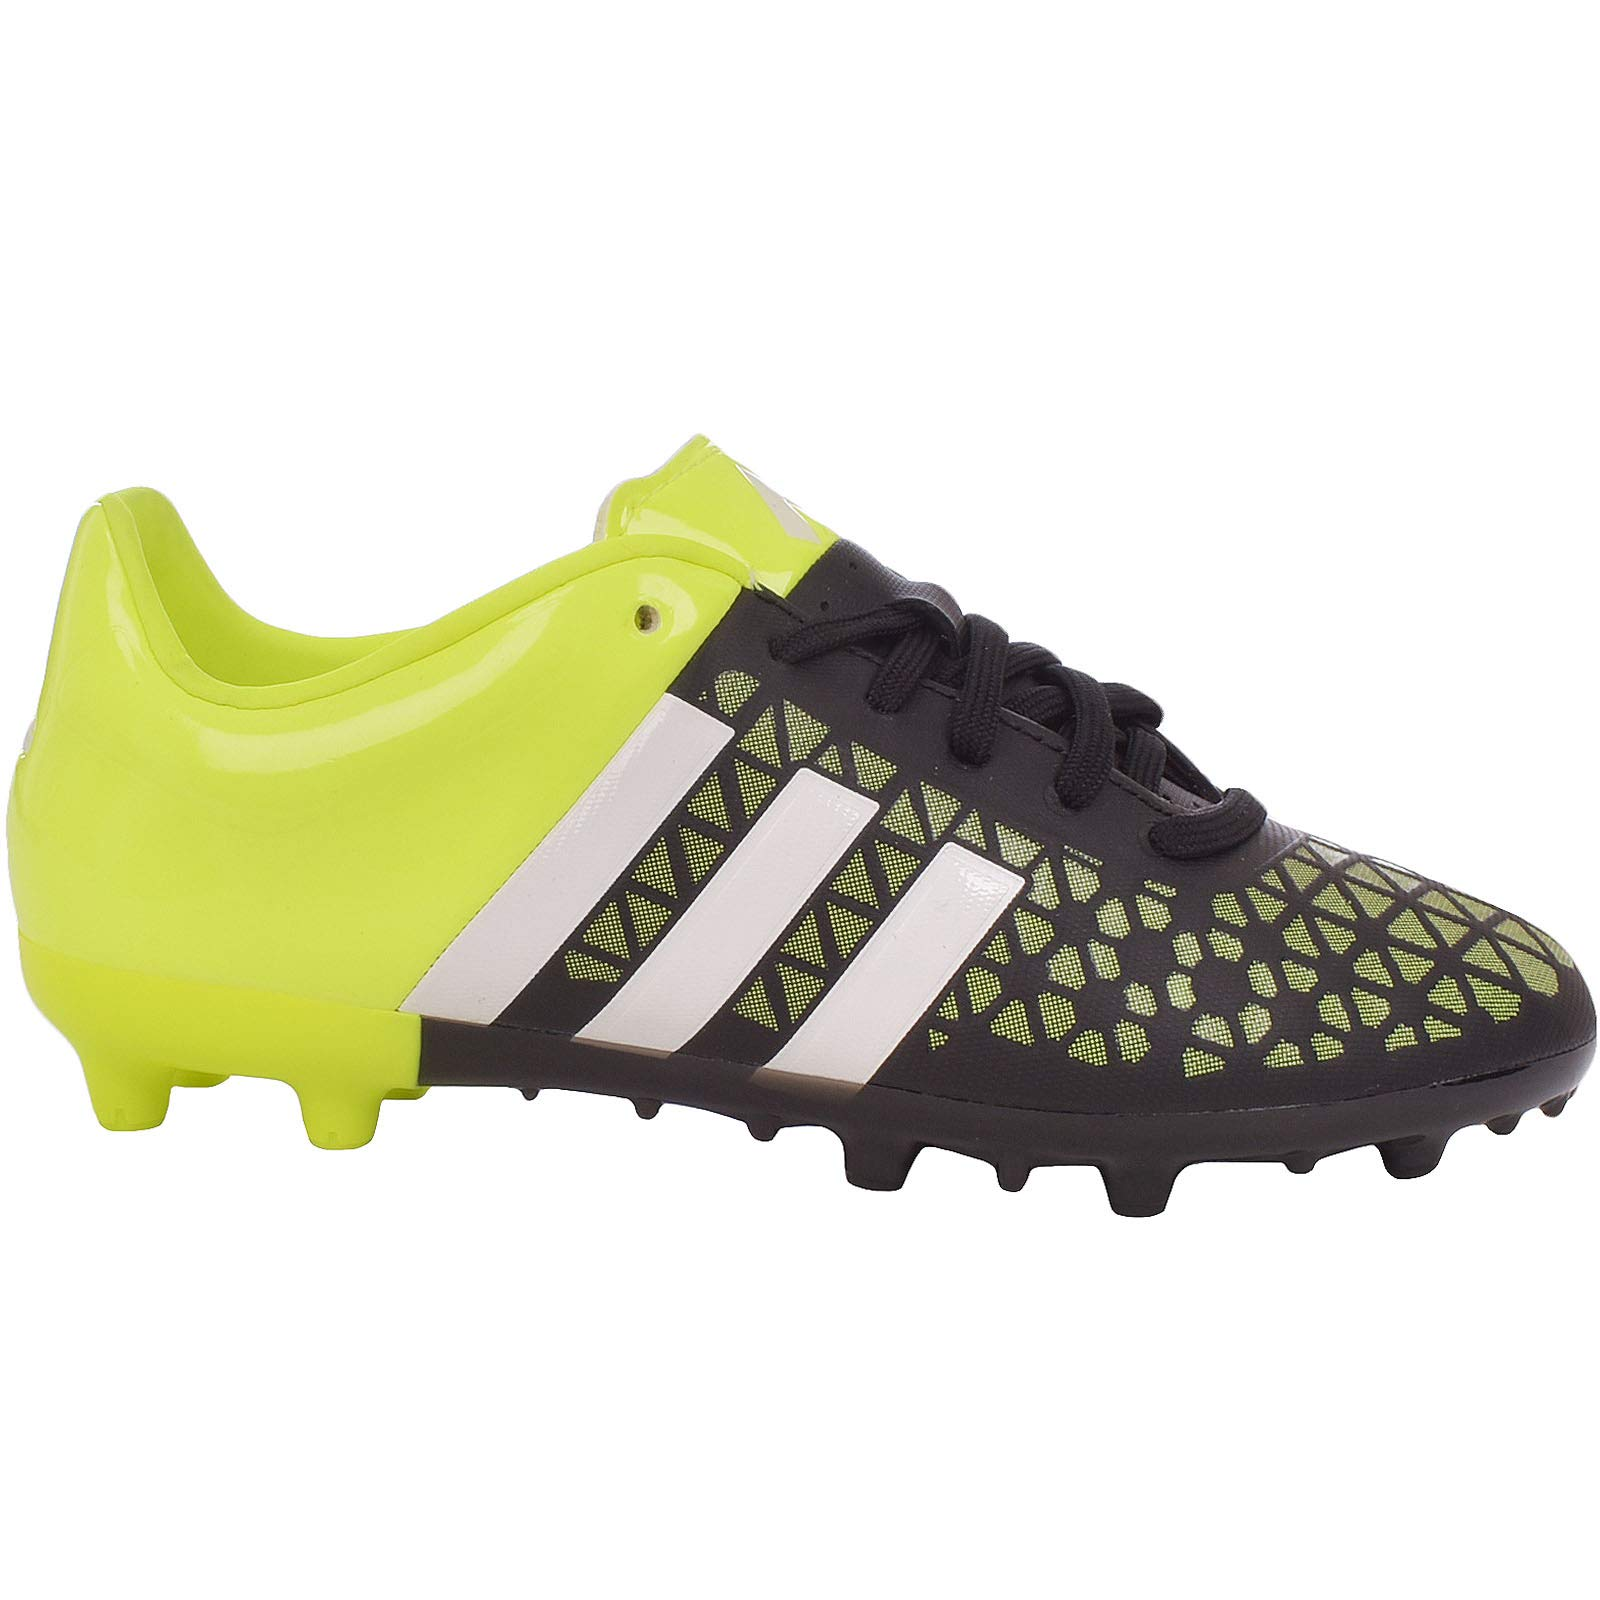 adidas Performance Boys ACE 15.3 FG/AG Junior Football Boots - 6 Black